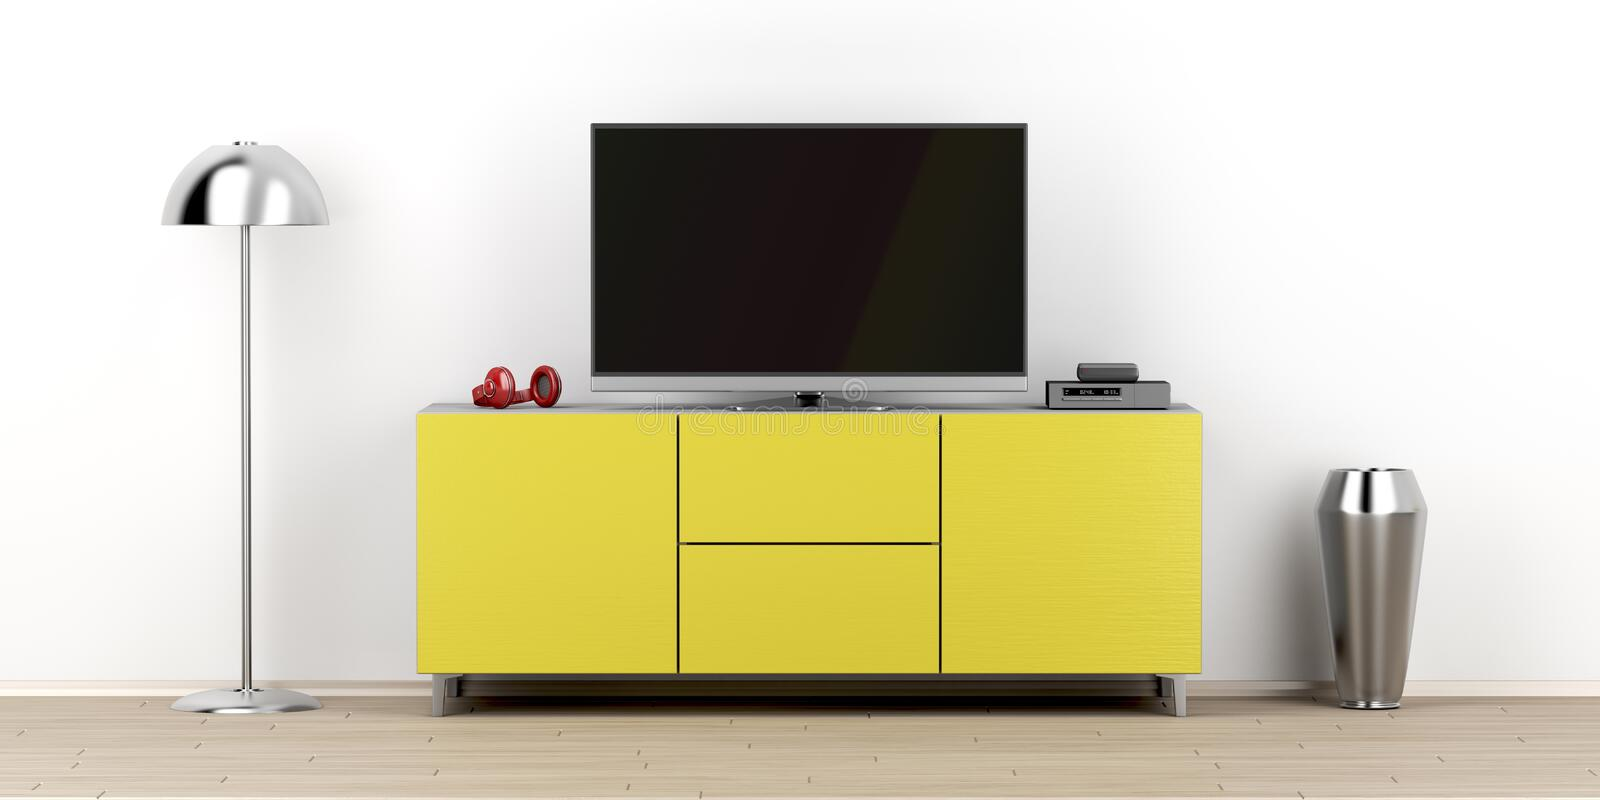 Led tv in the living room. Led tv with empty screen on modern tv stand in the living room, front view royalty free illustration